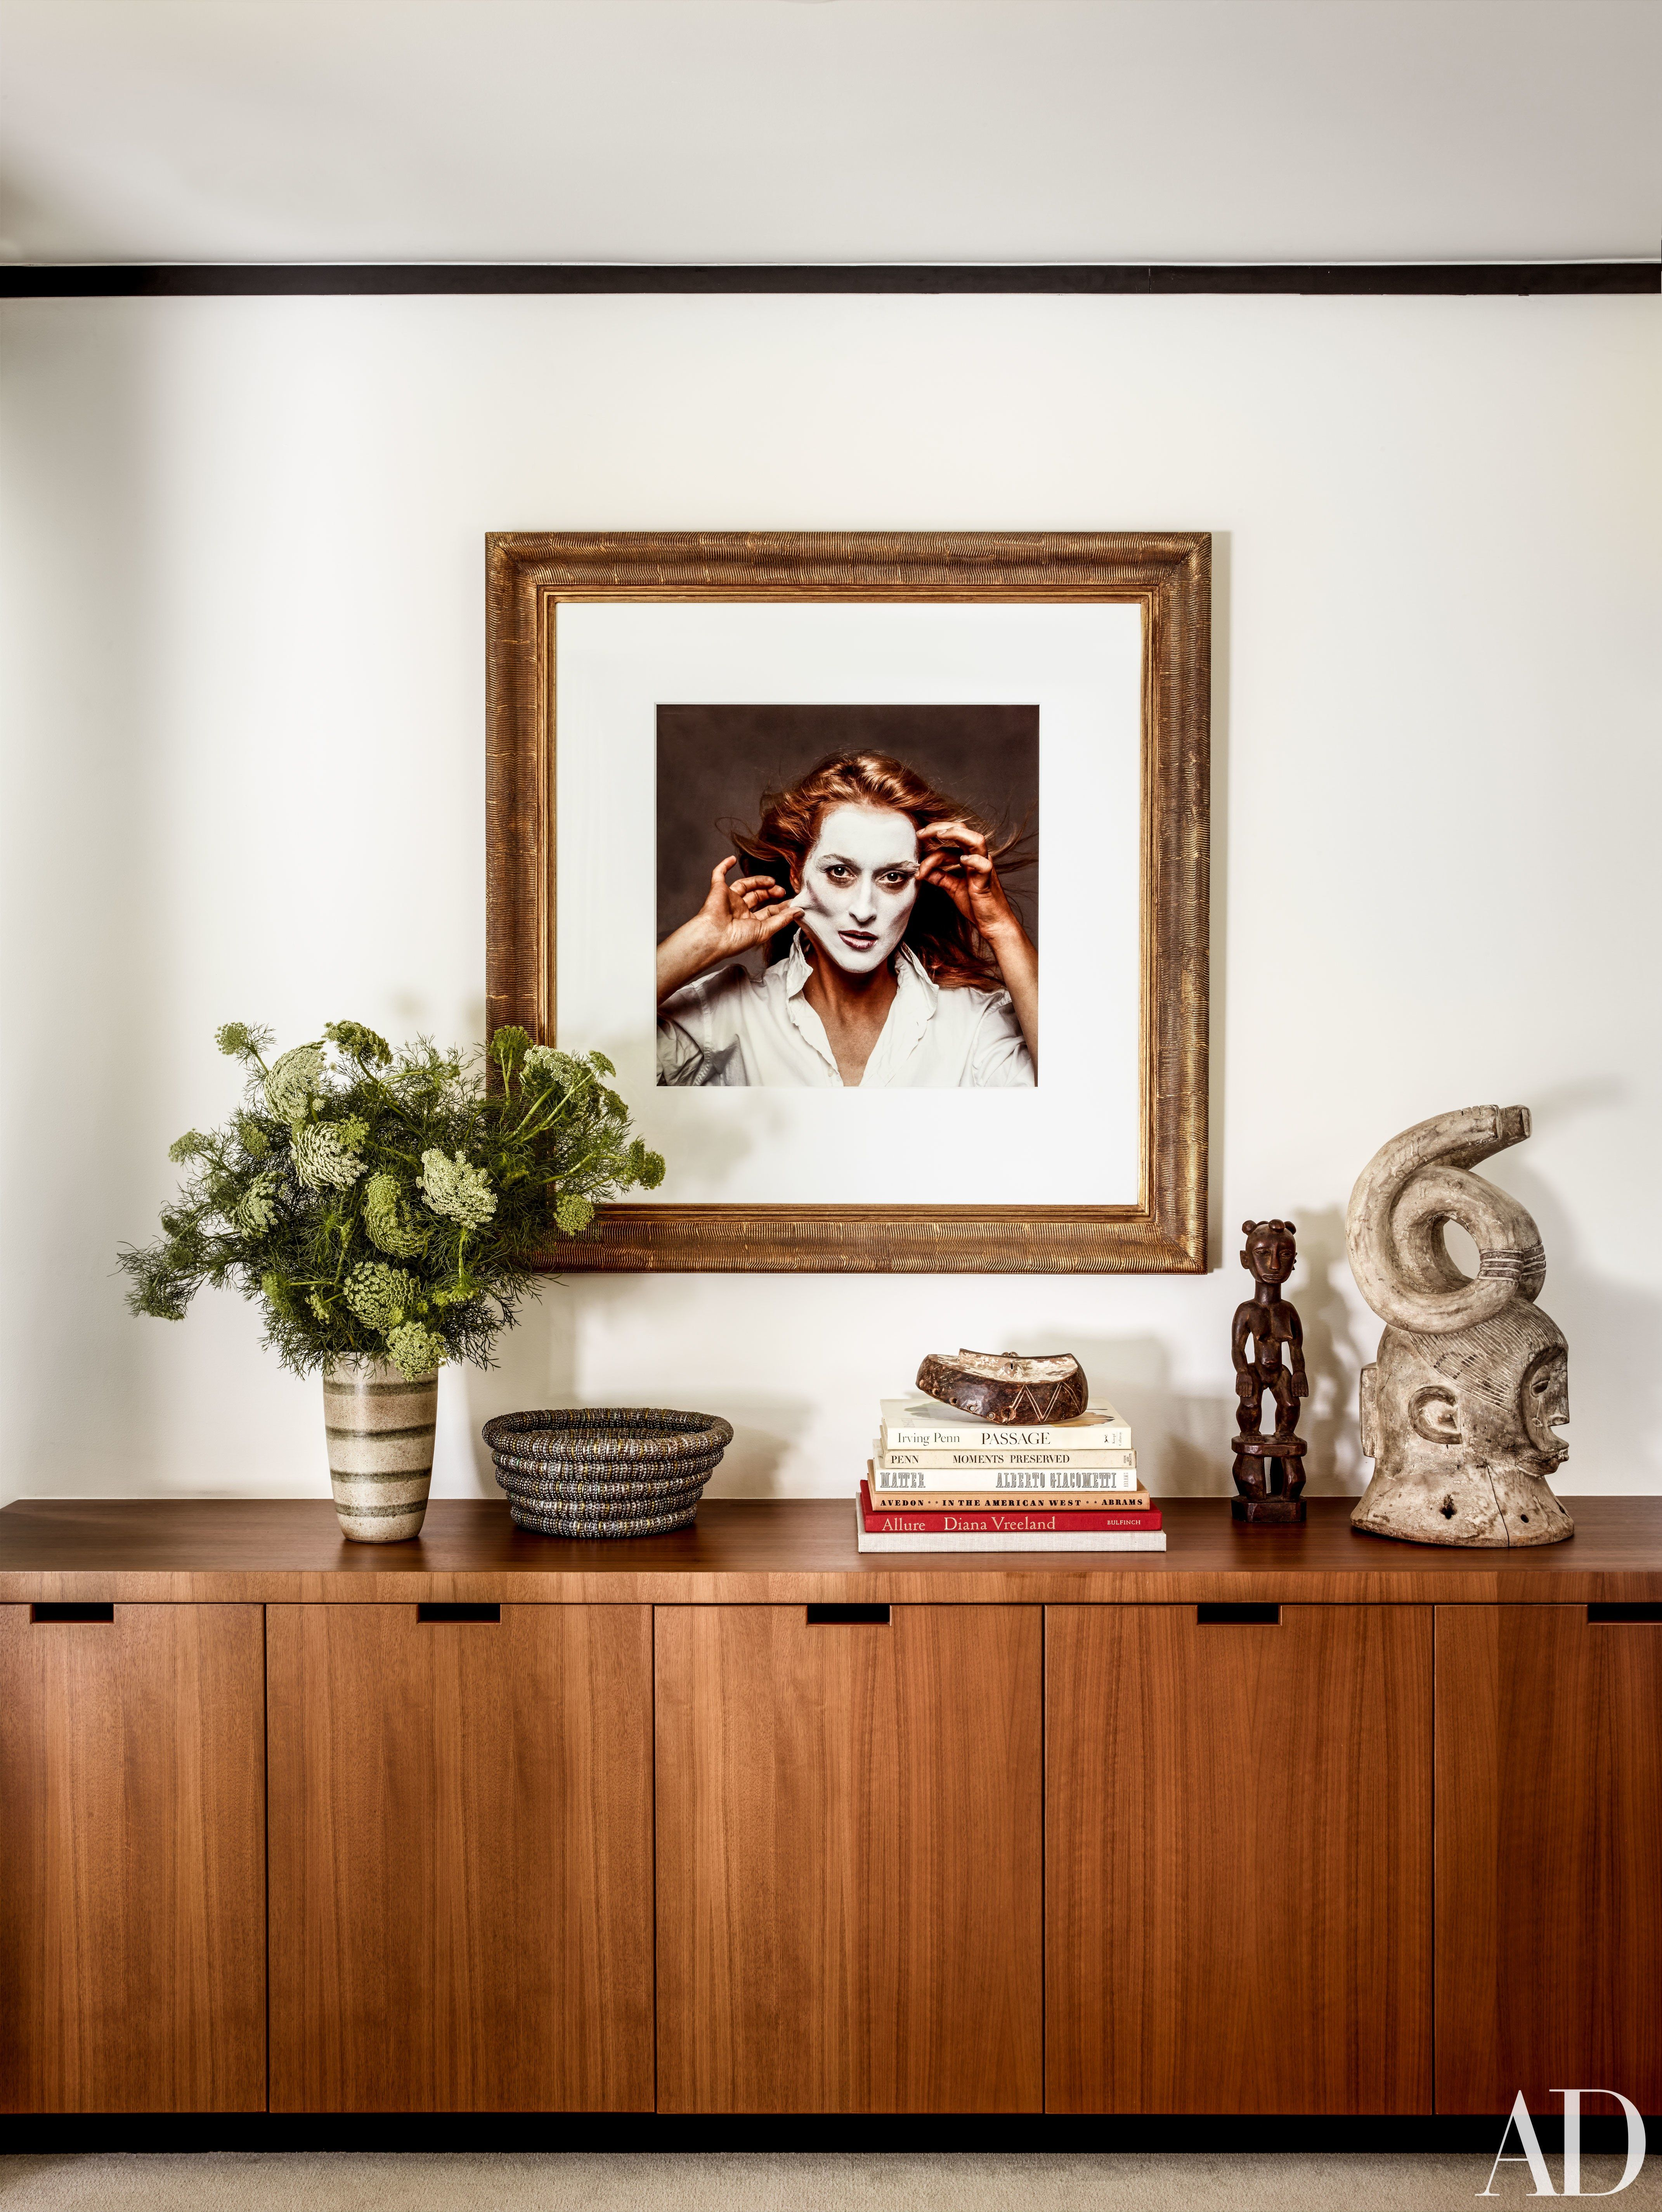 Gqs fred woodward shows us inside his midcentury home photos architectural digest